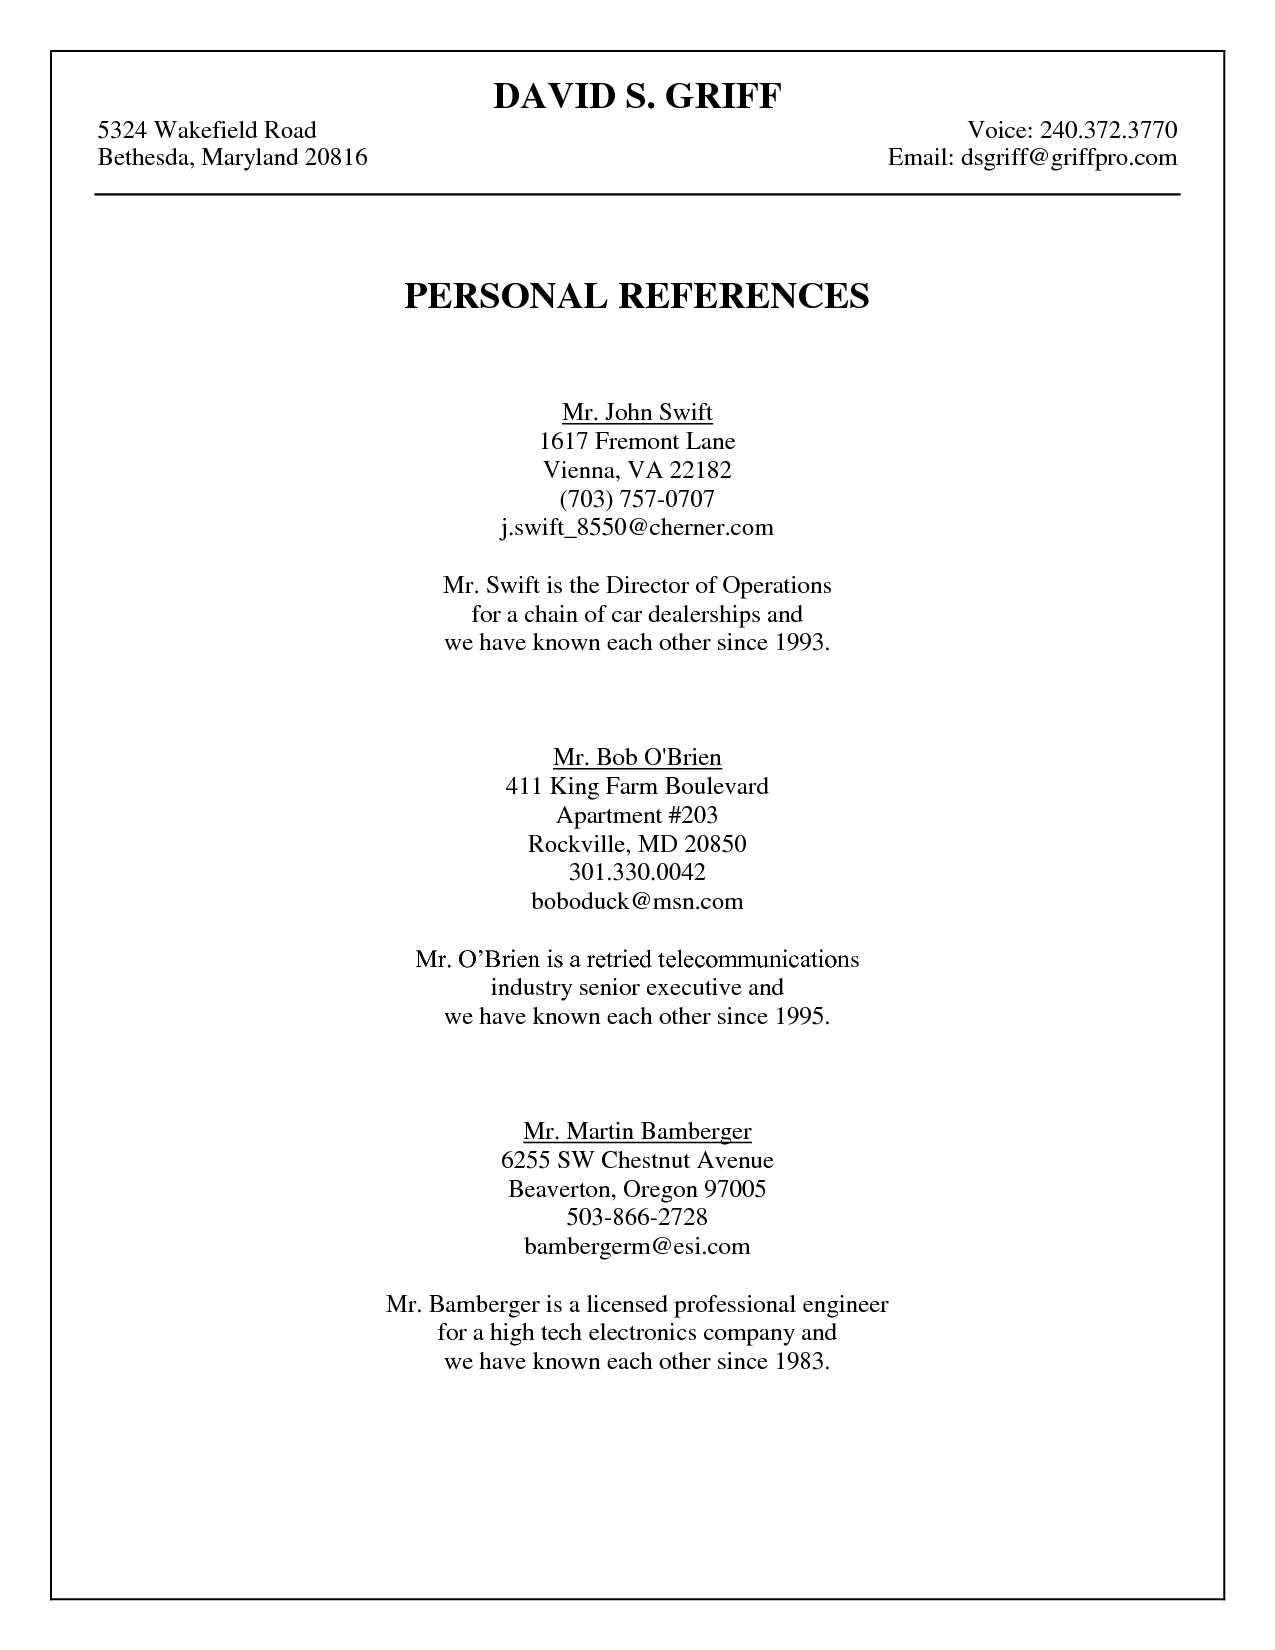 job references list format service resume job references list format format a list of job references sample template page job references format